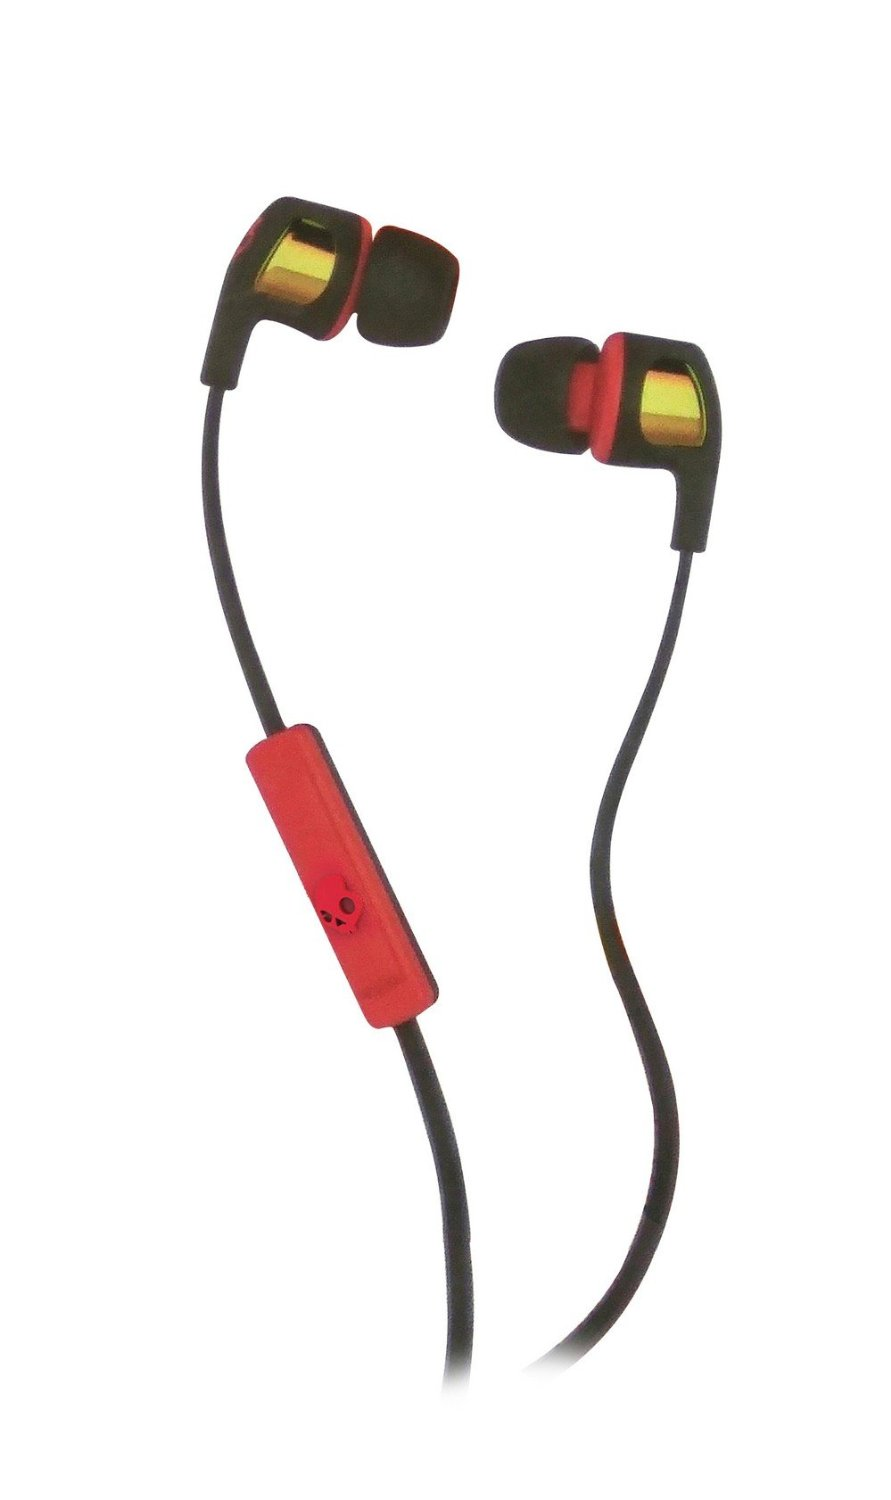 medium resolution of get quotations skullcandy smokin buds 2 noise isolating earbuds with in line microphone and remote